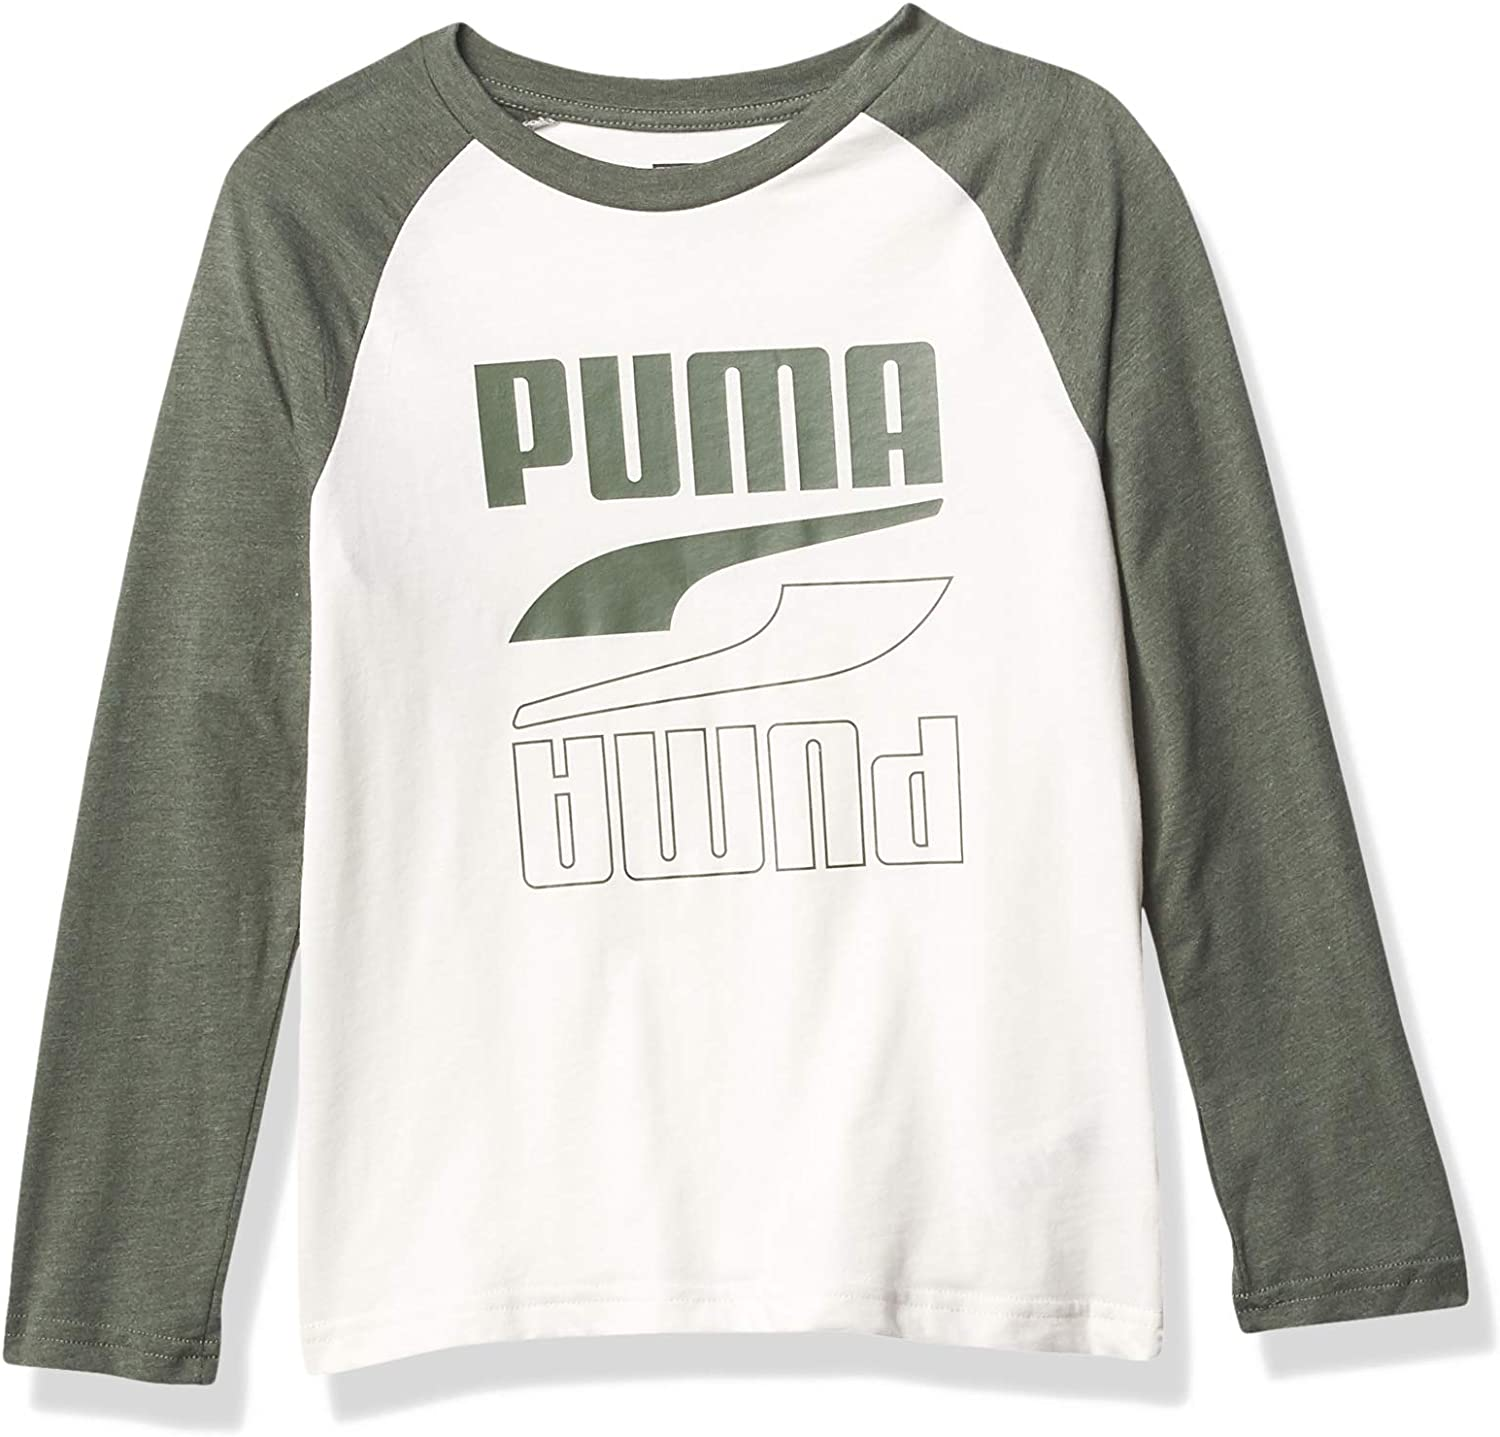 New Hurley long sleeve tee T shirt boys baby infant solid gray logo  size 4T